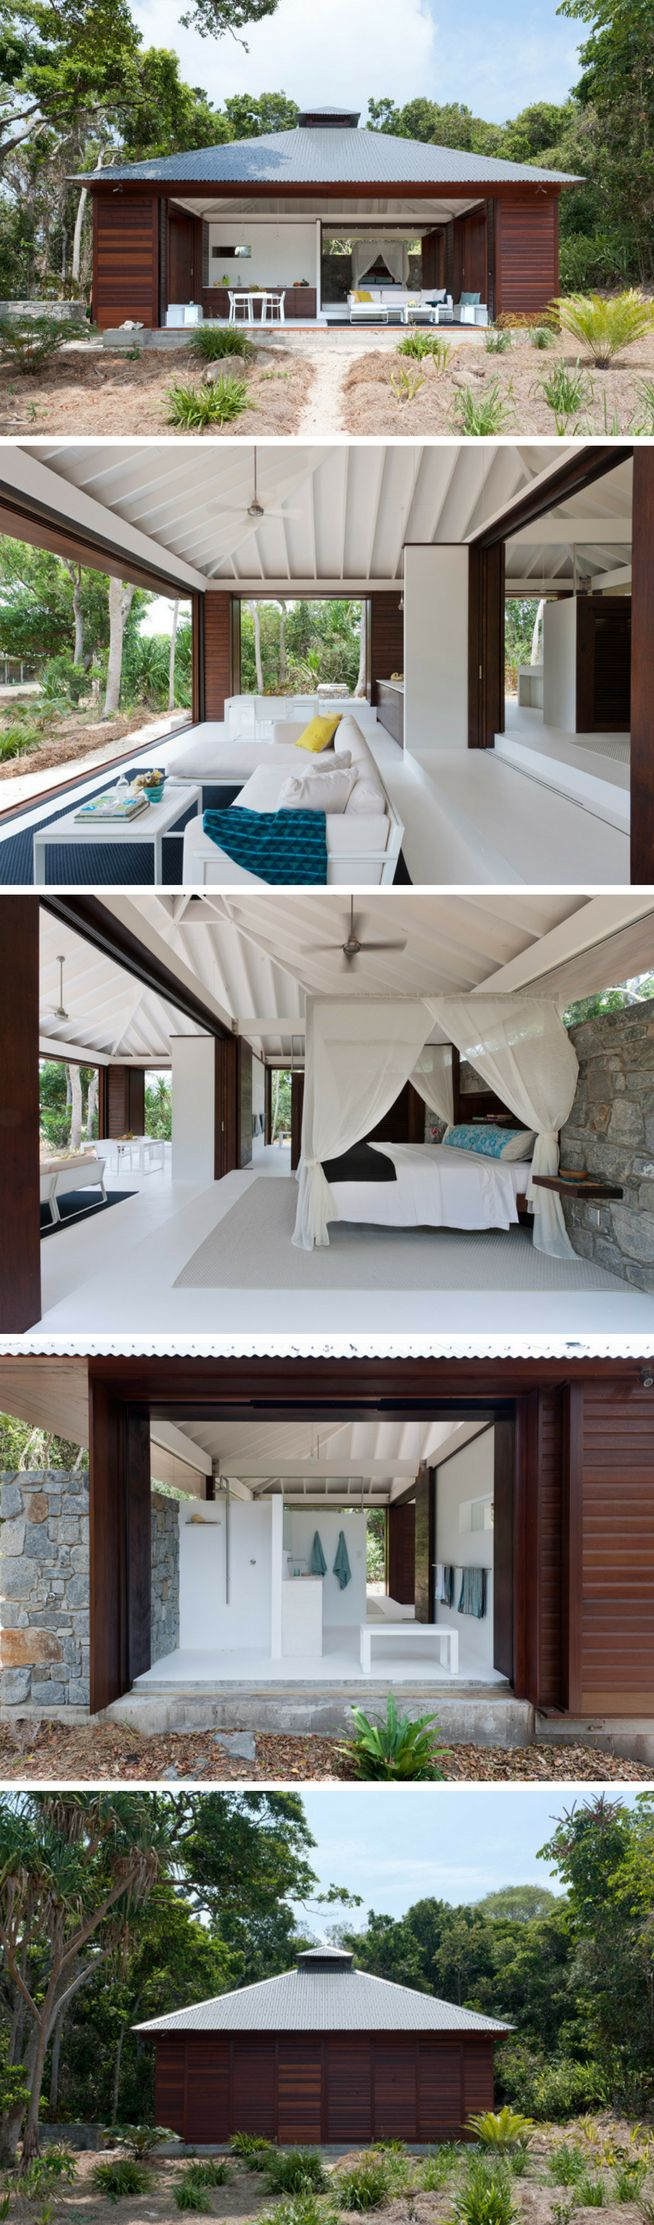 A 1,100 sq ft beach house in Queensland, Australia. The home can be opened and closed as needed!